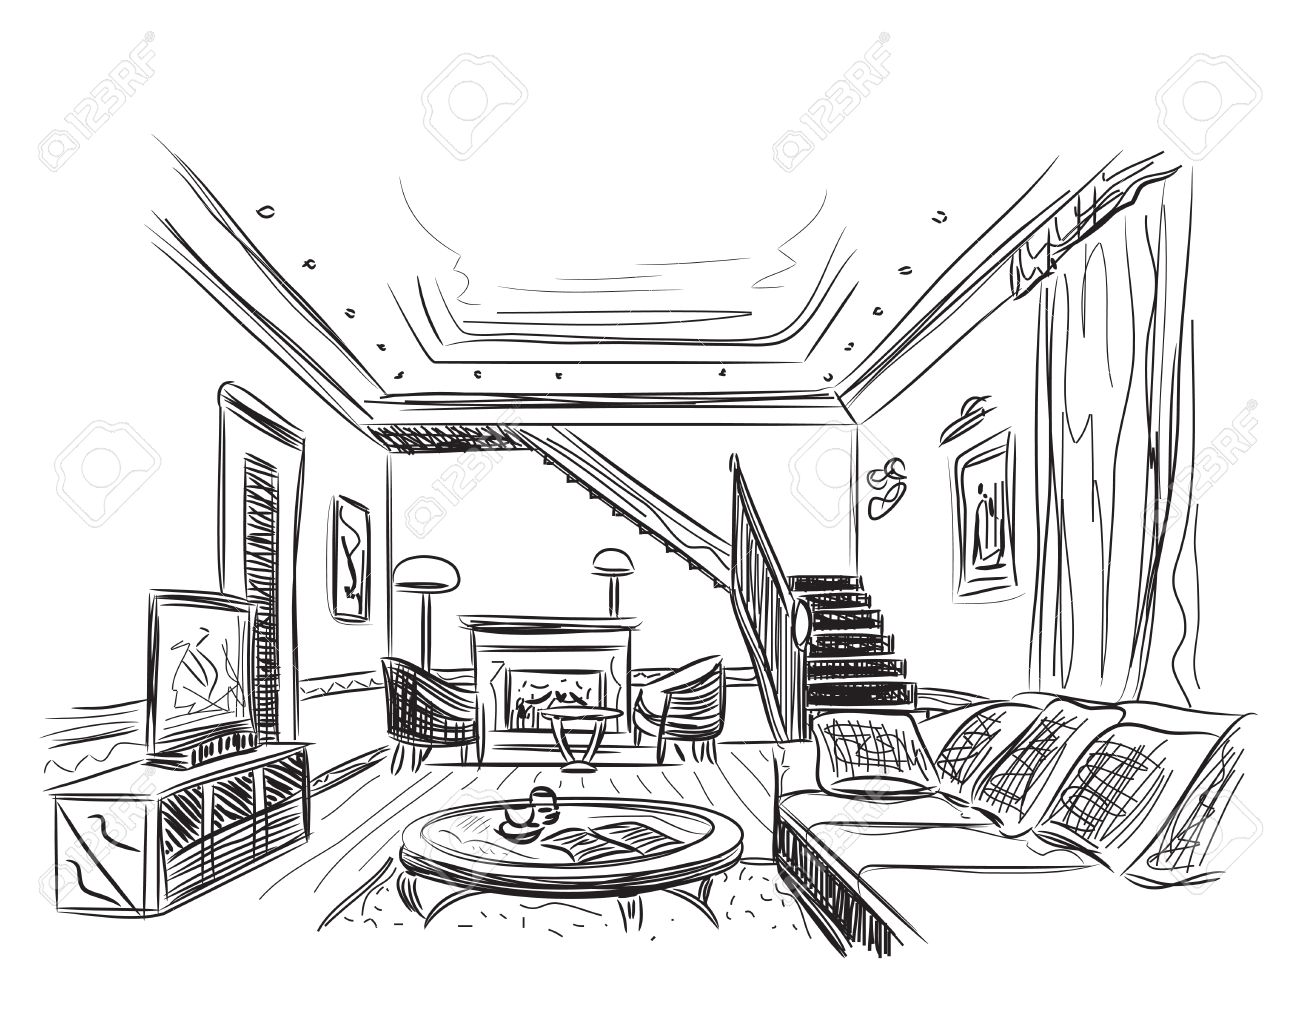 Modern interior room sketch. Hand drawn illustration. Stock Vector -  49238303